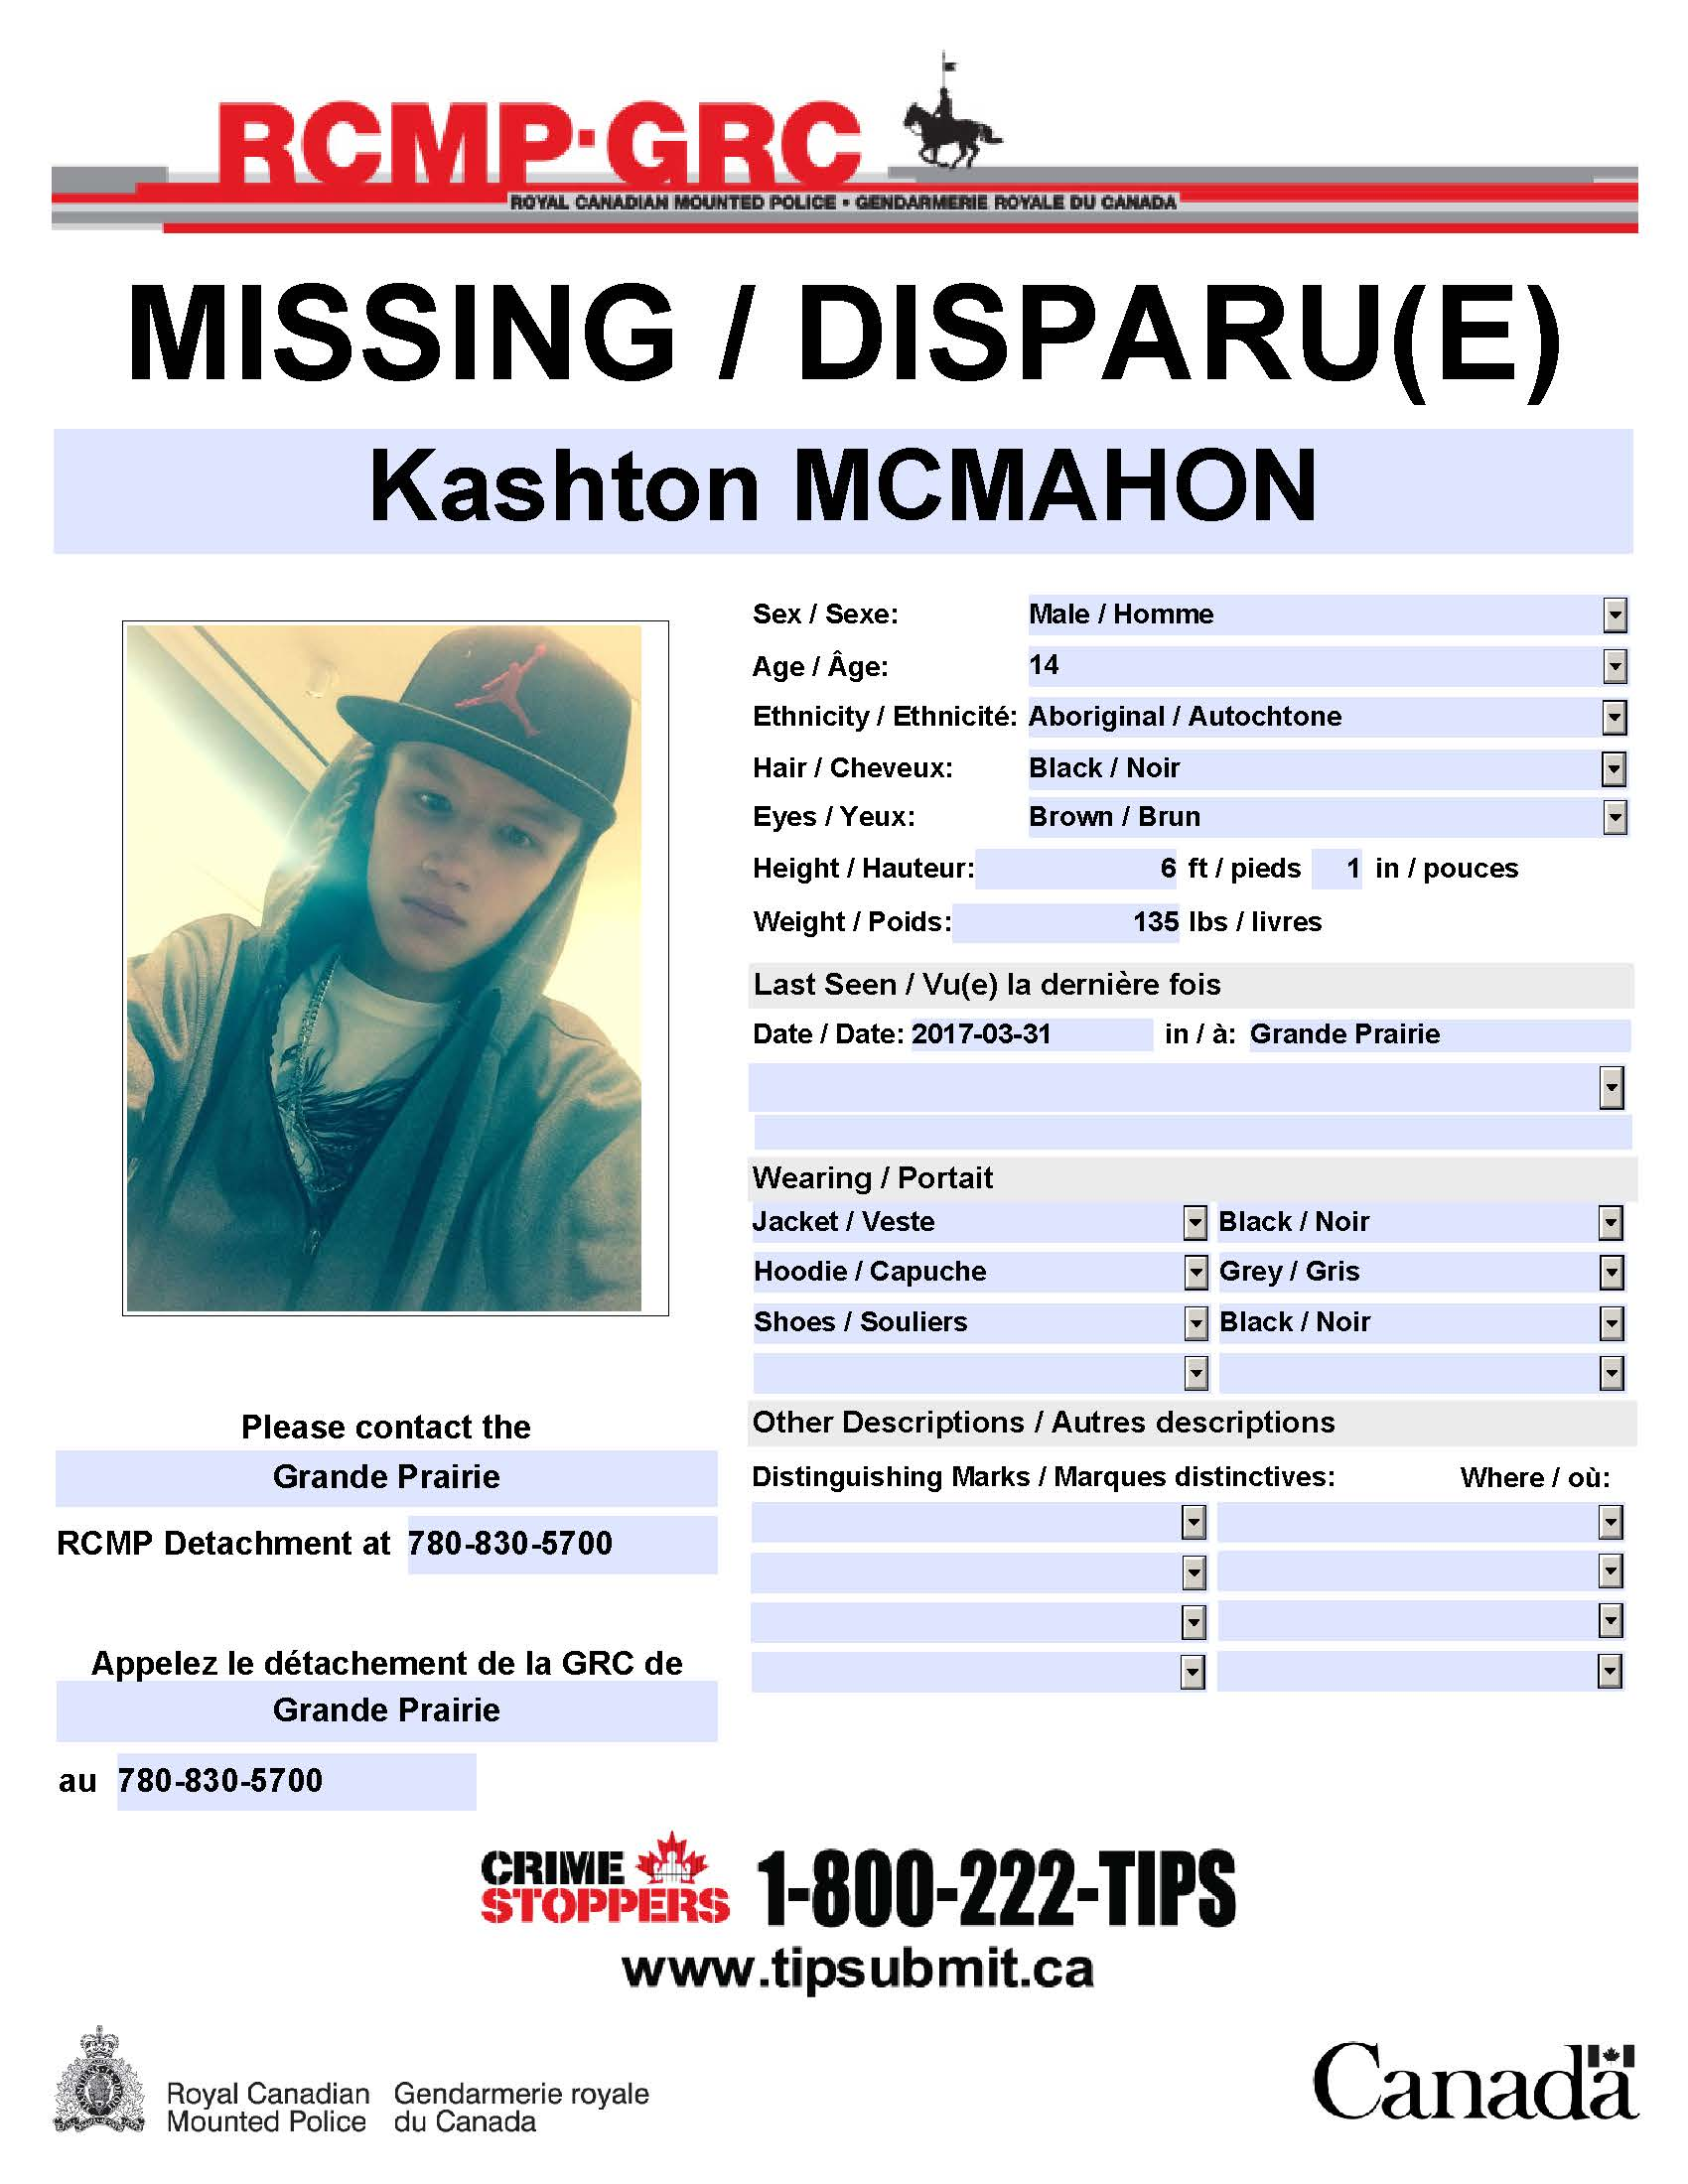 RCMP search for missing 14 year old boy